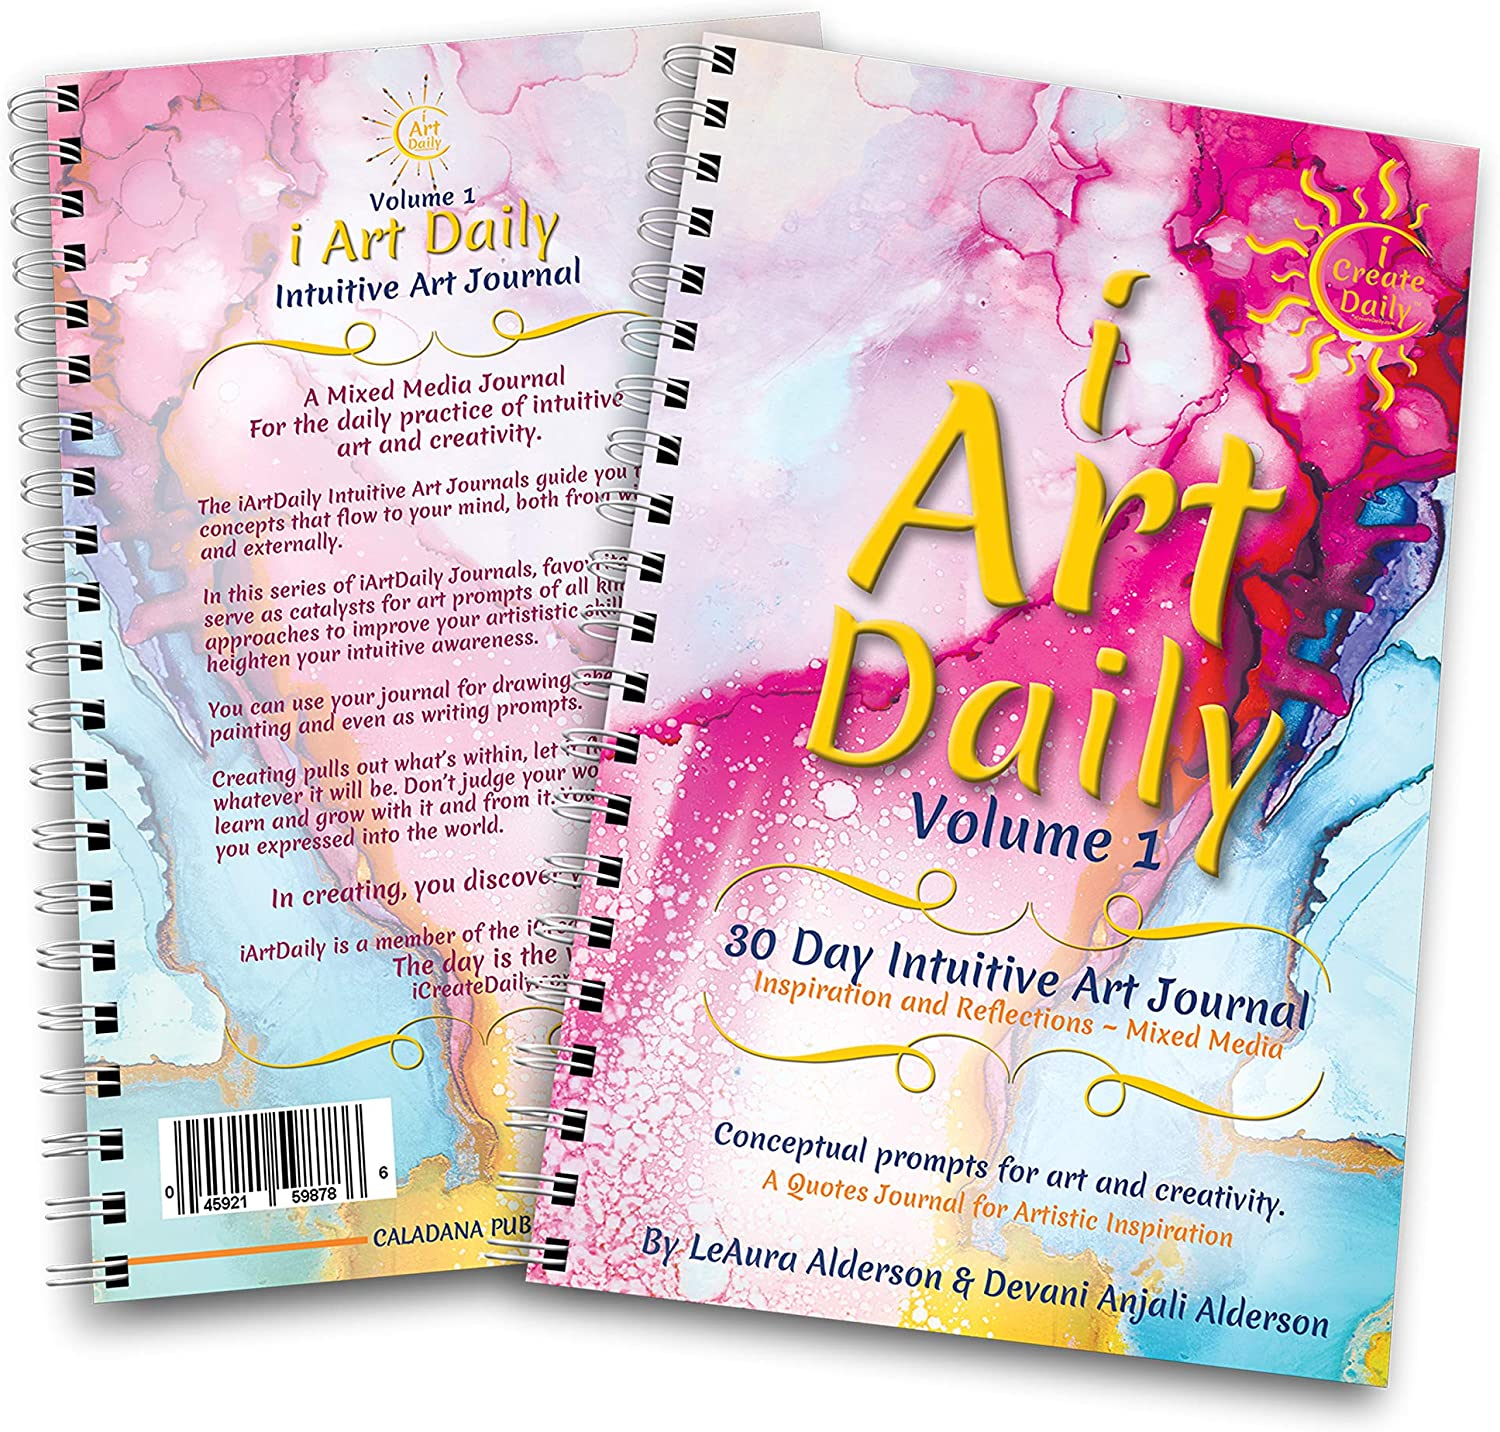 iArtDaily 30 Day Intuitive Art Journal - Volume 1 - Quote Art Prompts for Inspiration, Reflections and Creativity - Mixed Media - Pink Watercolor - i Create Daily